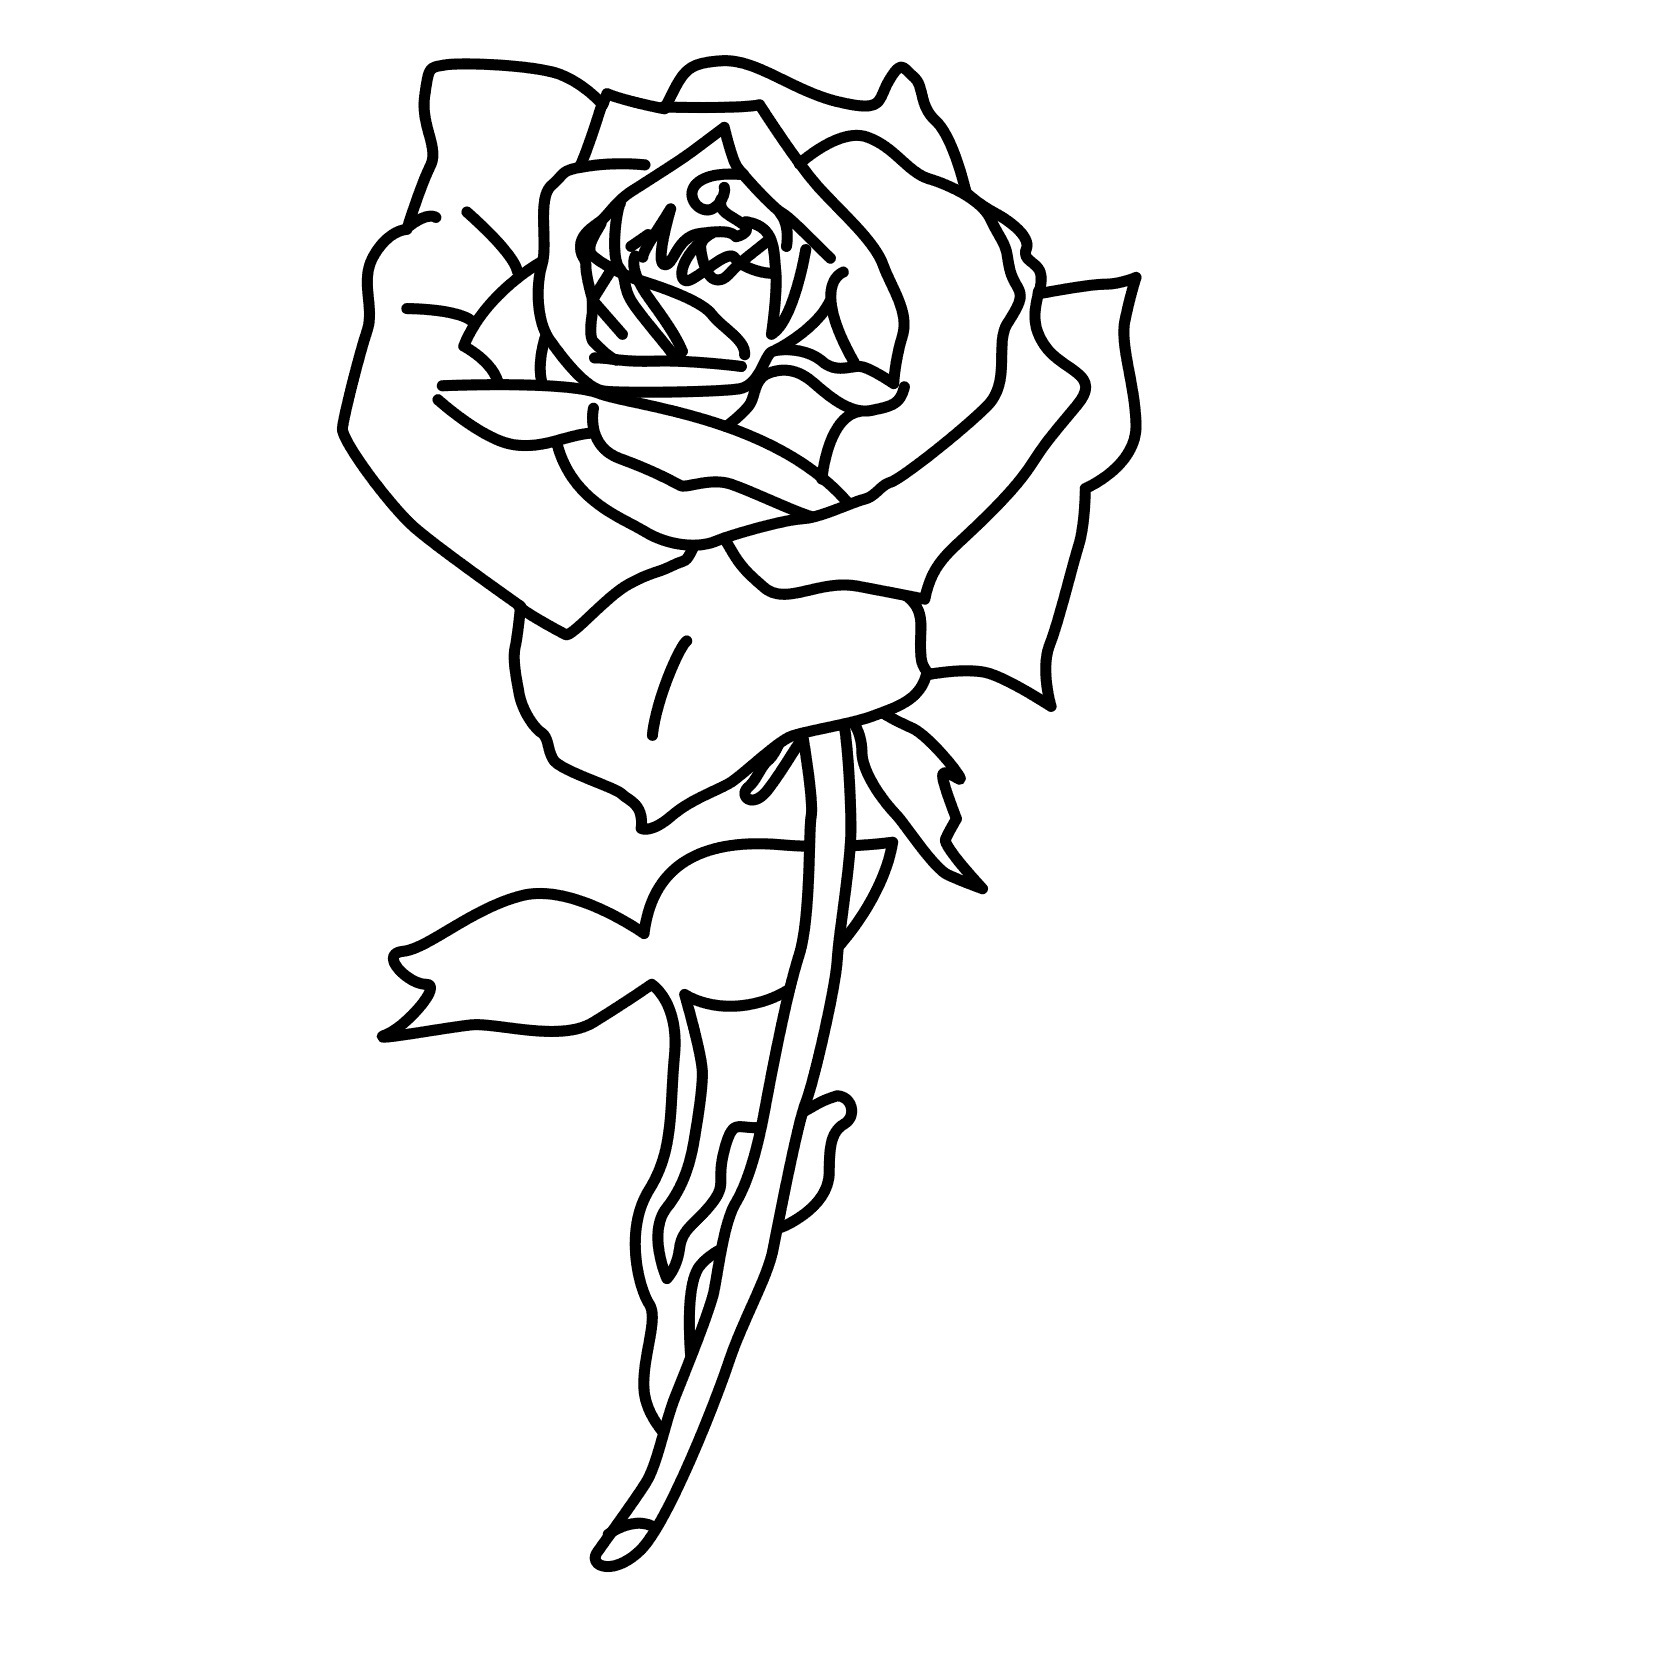 picture of a rose to color free printable roses coloring pages for kids color rose to of picture a